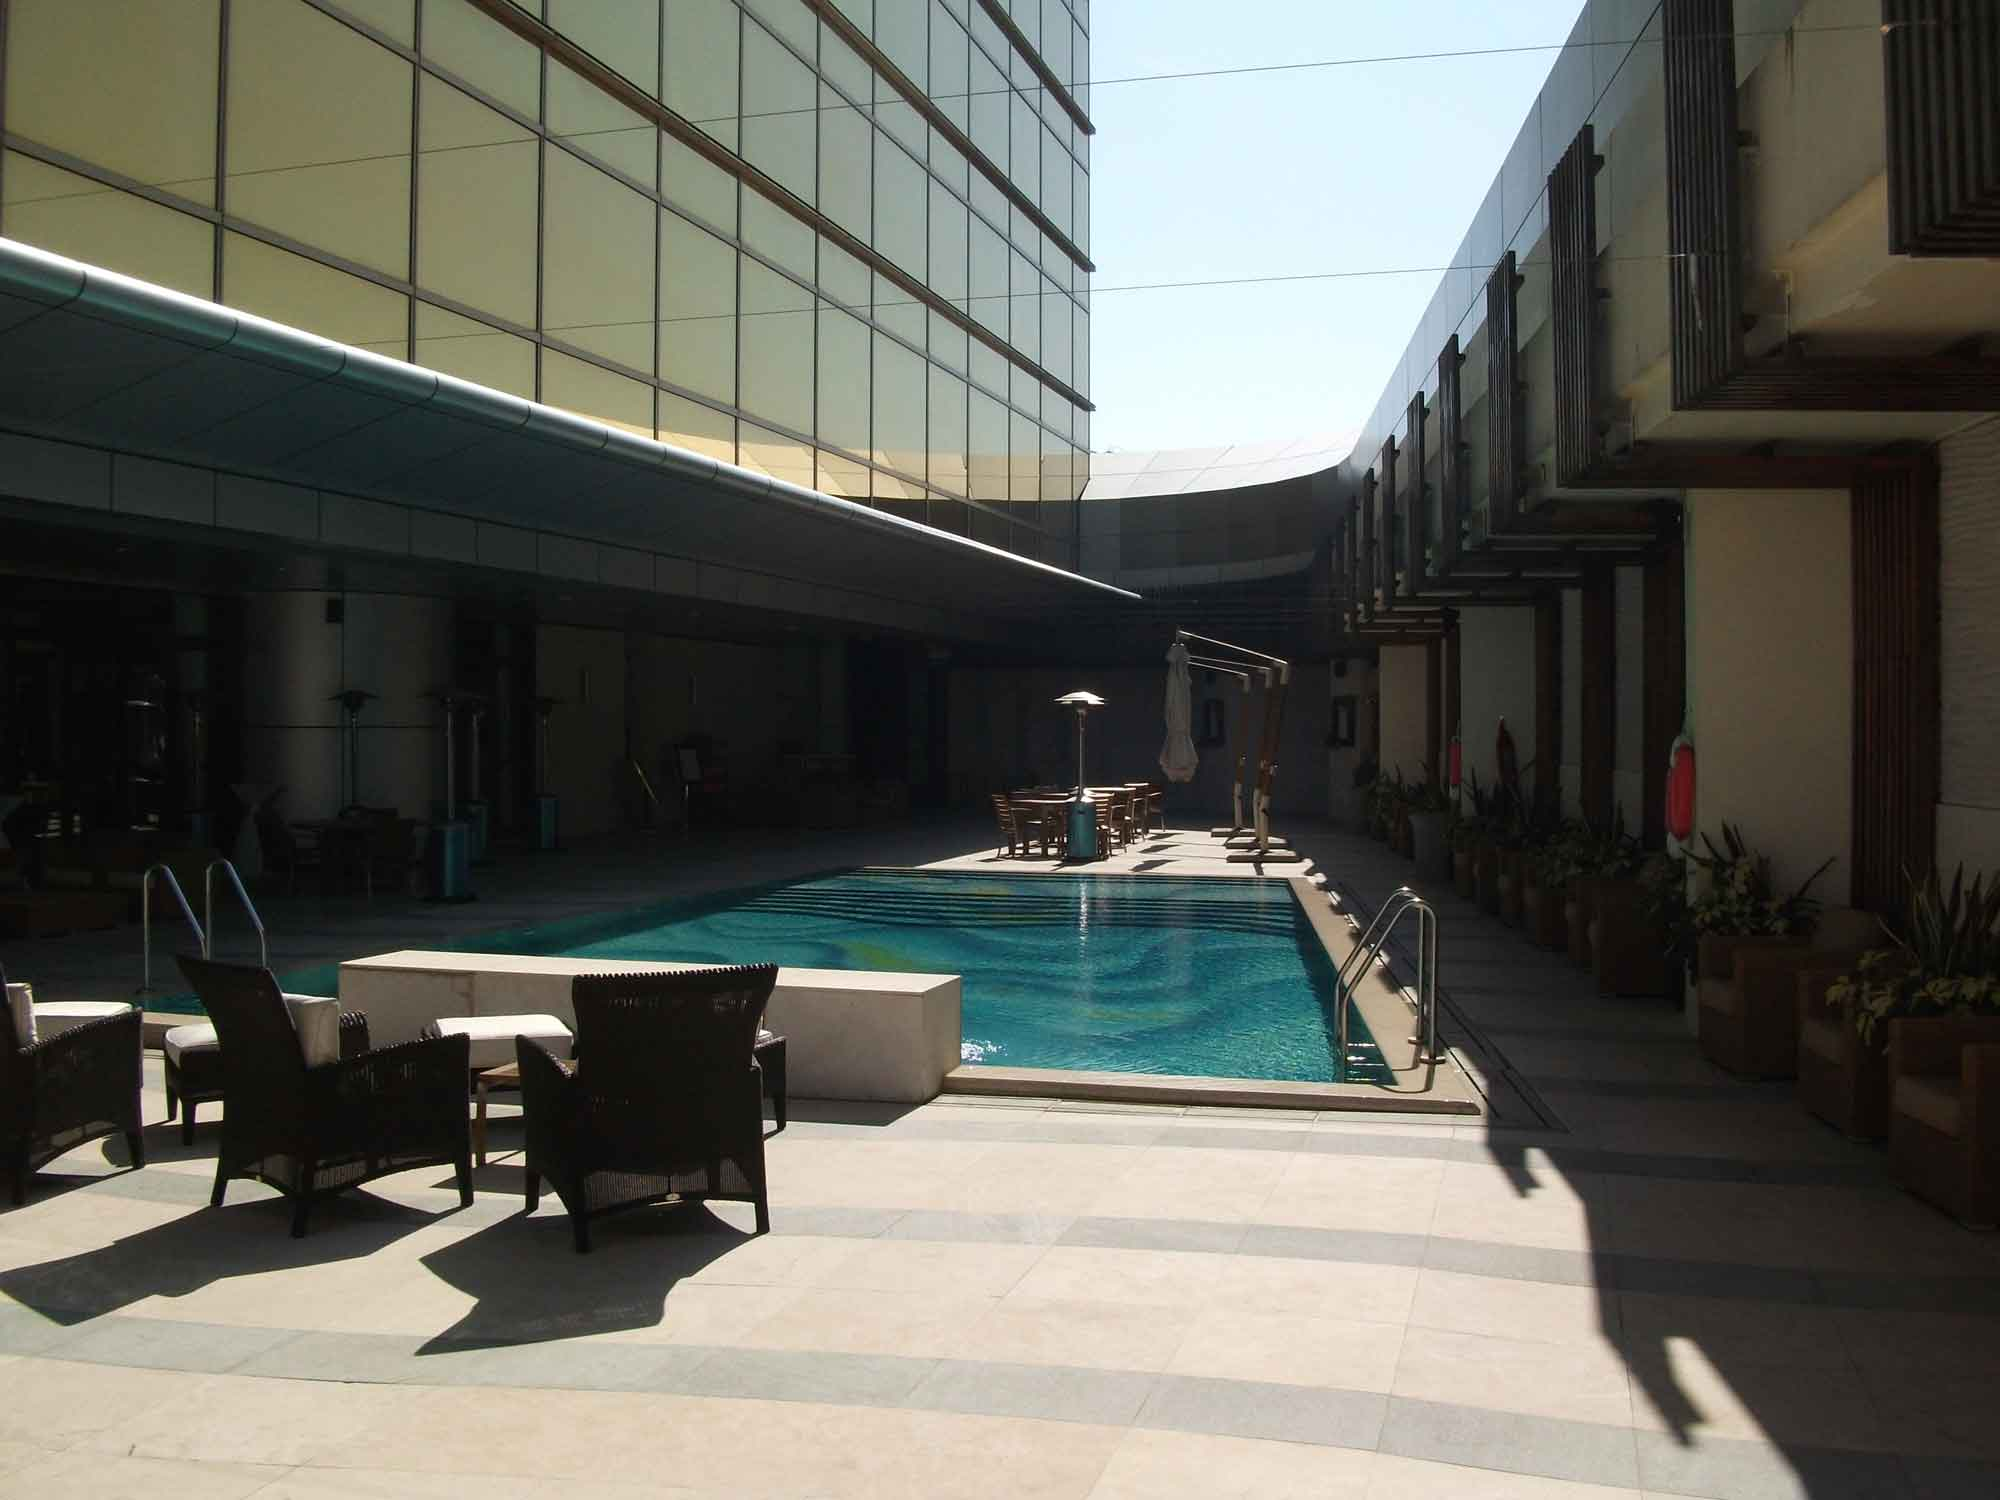 Sands Macao outdoor pool and deck